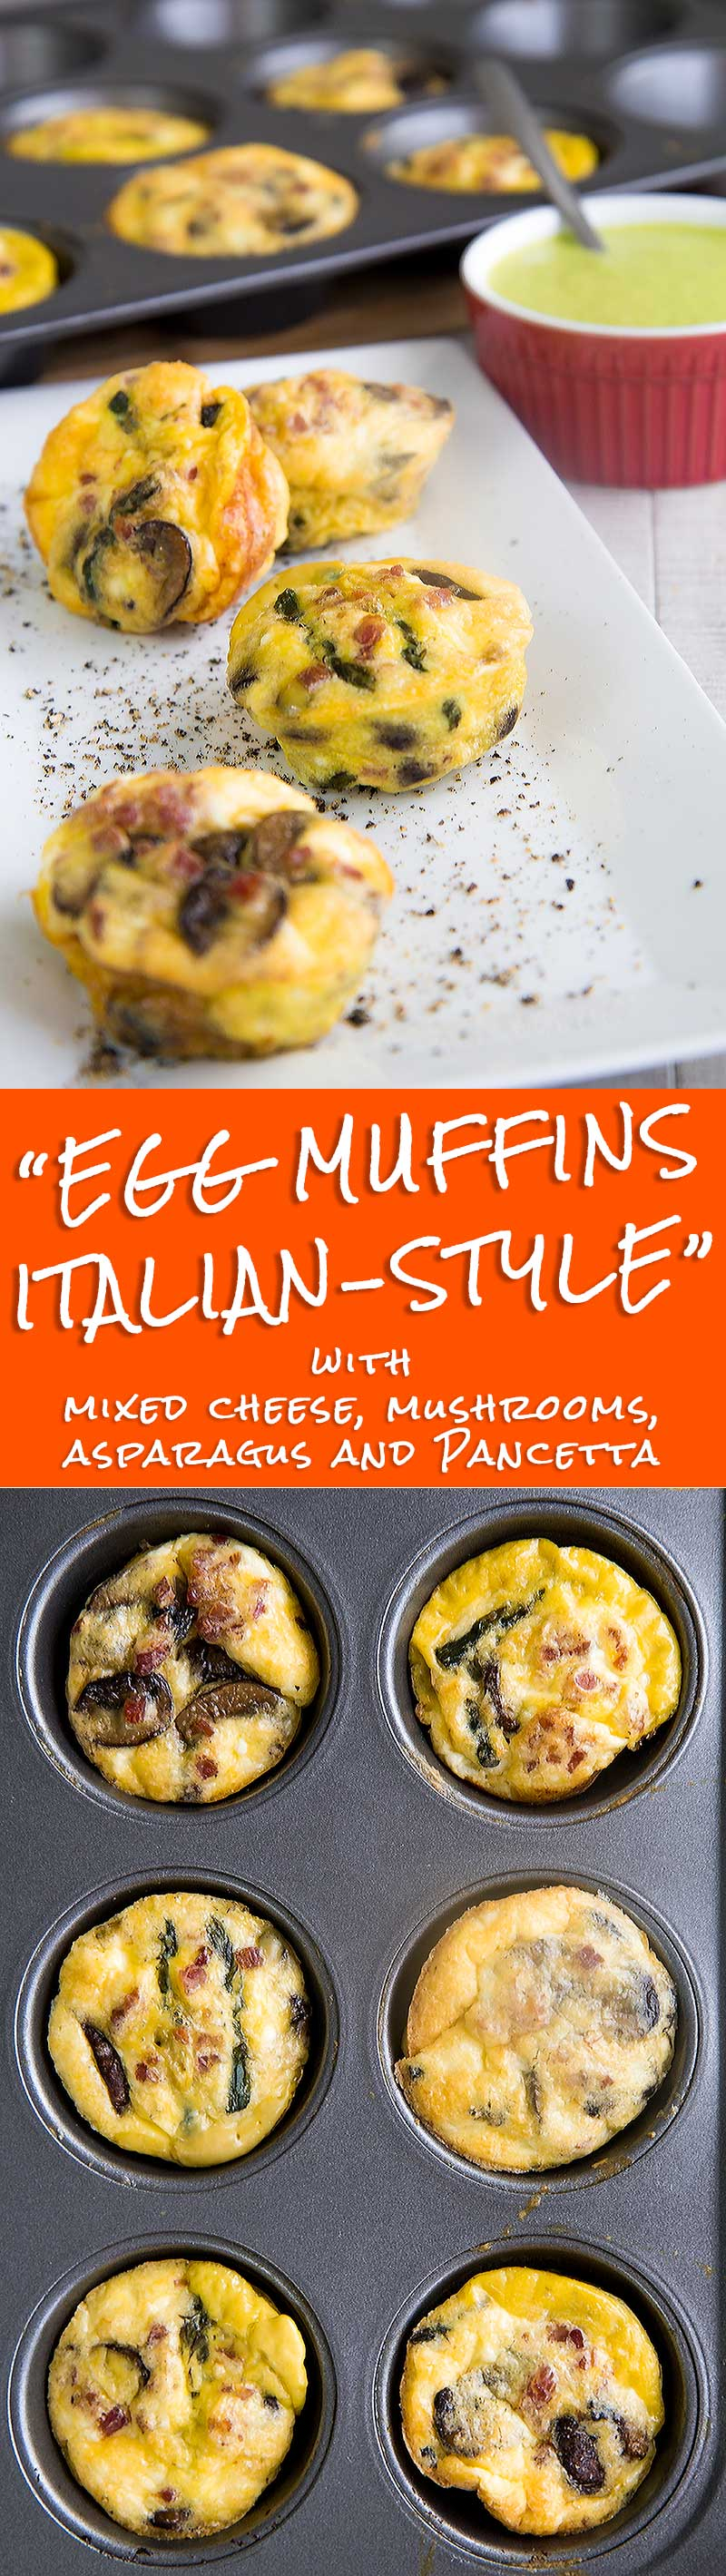 EGG MUFFINS ITALIAN STYLE with mushrooms, asparagus and Pancetta